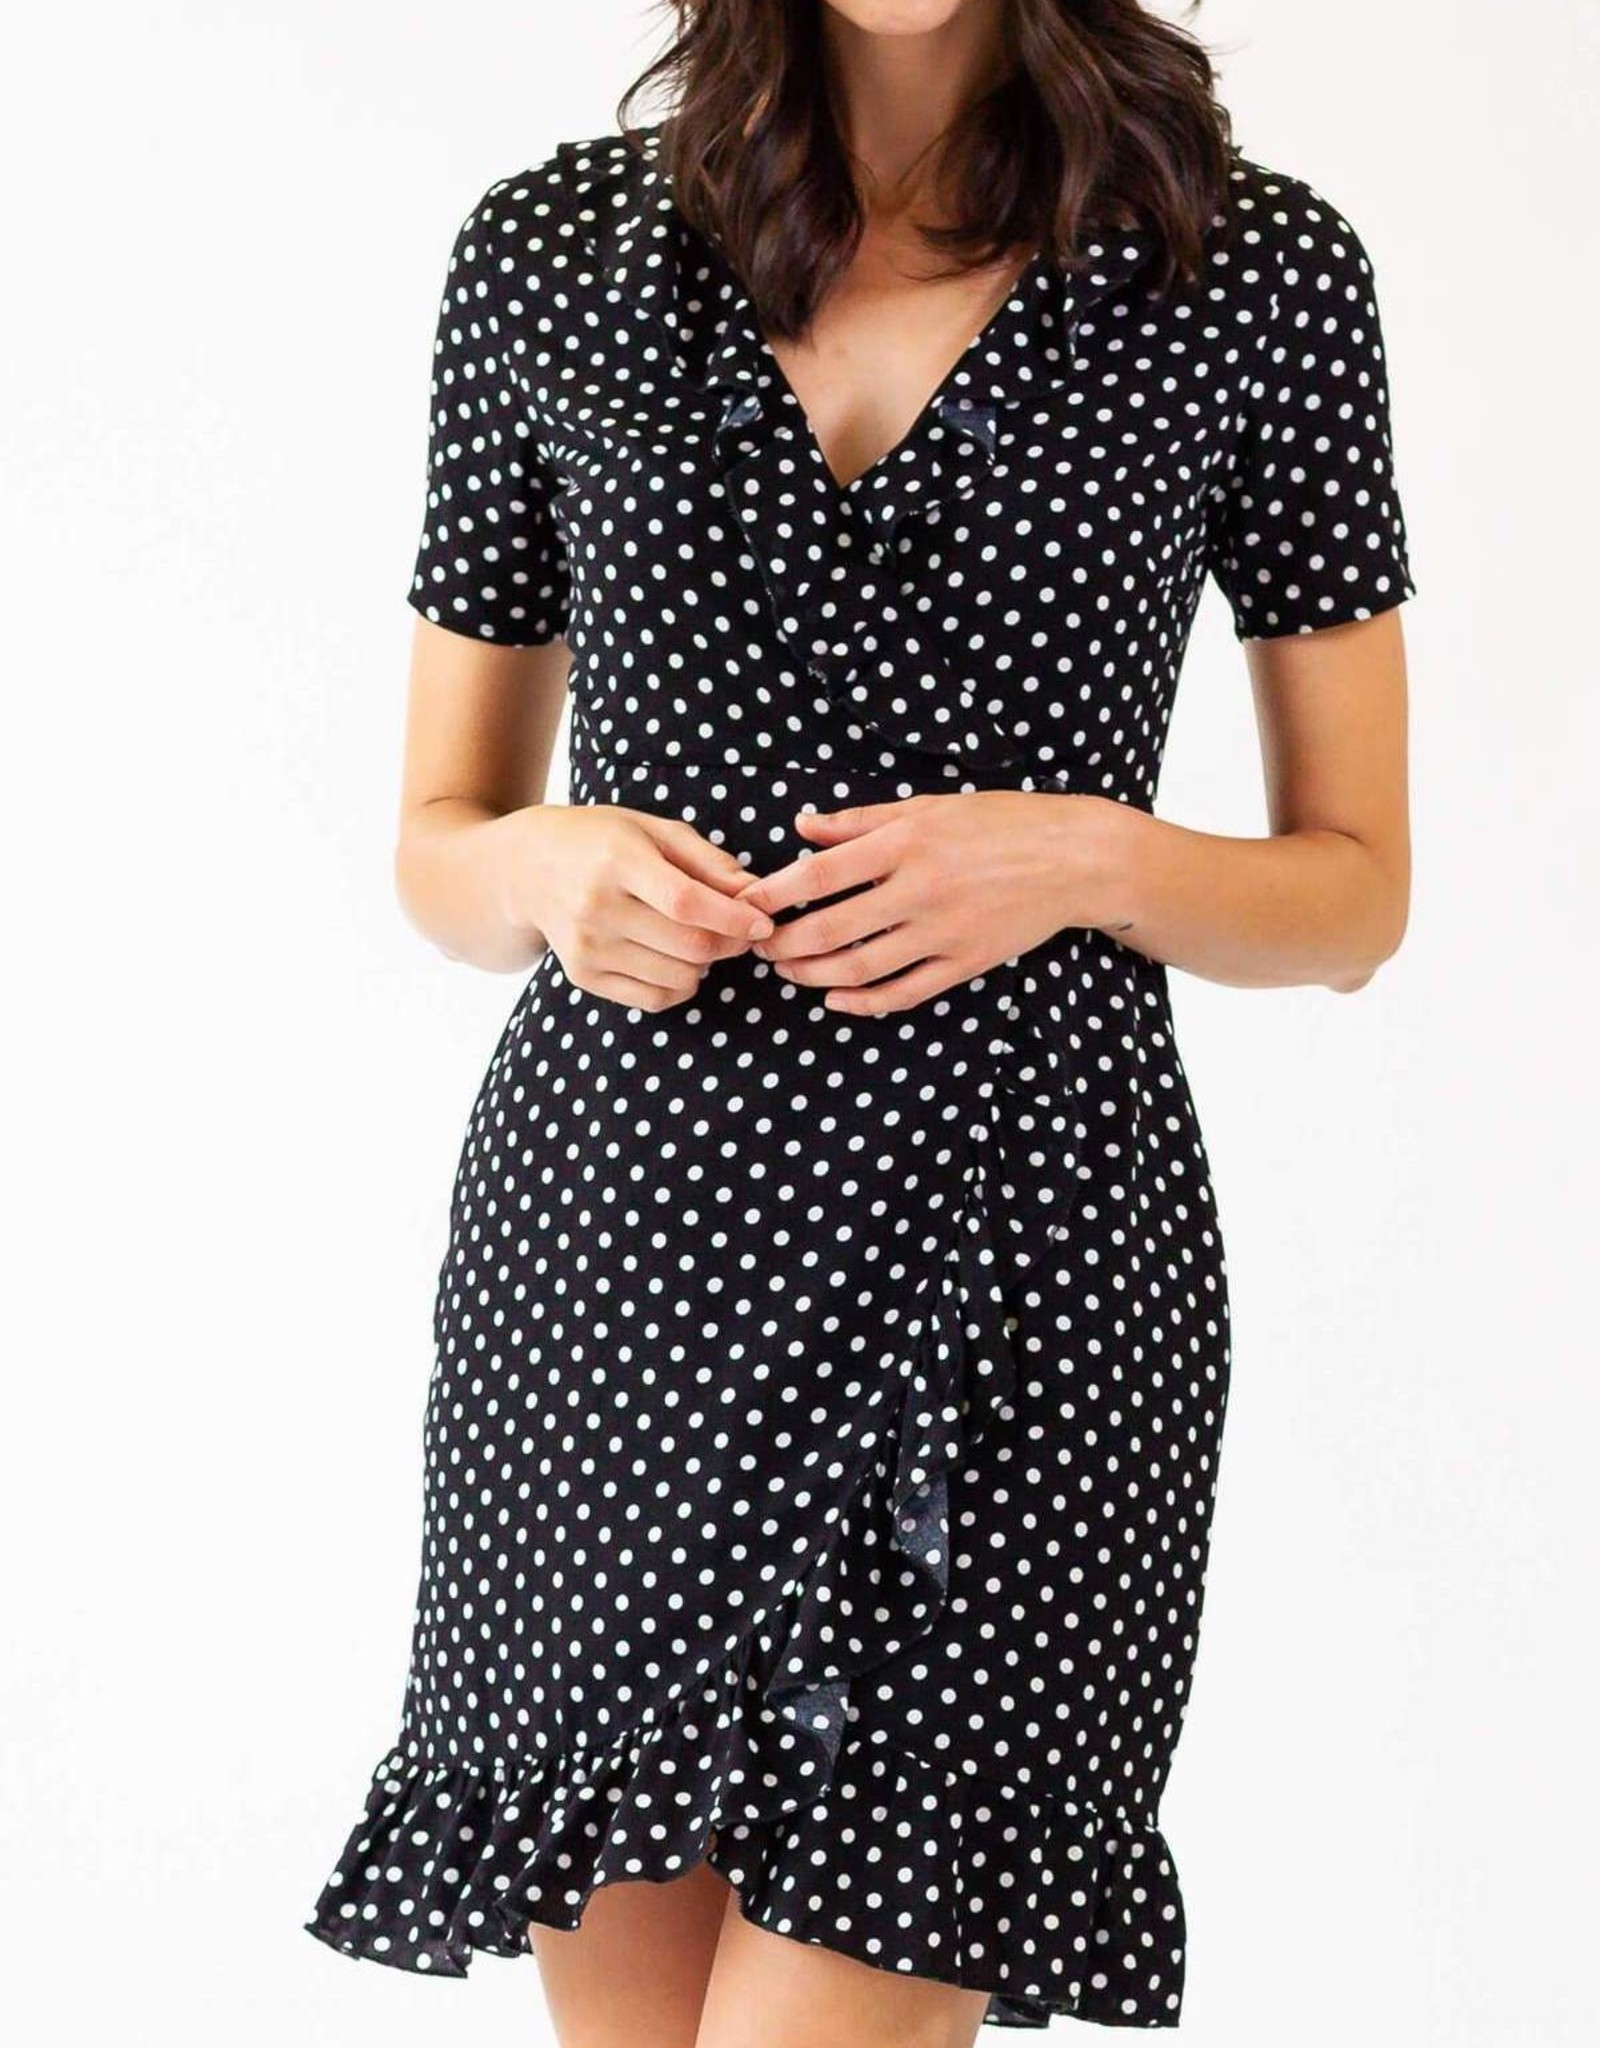 Pink Martini Boho-Chic Polka Dotted Dress